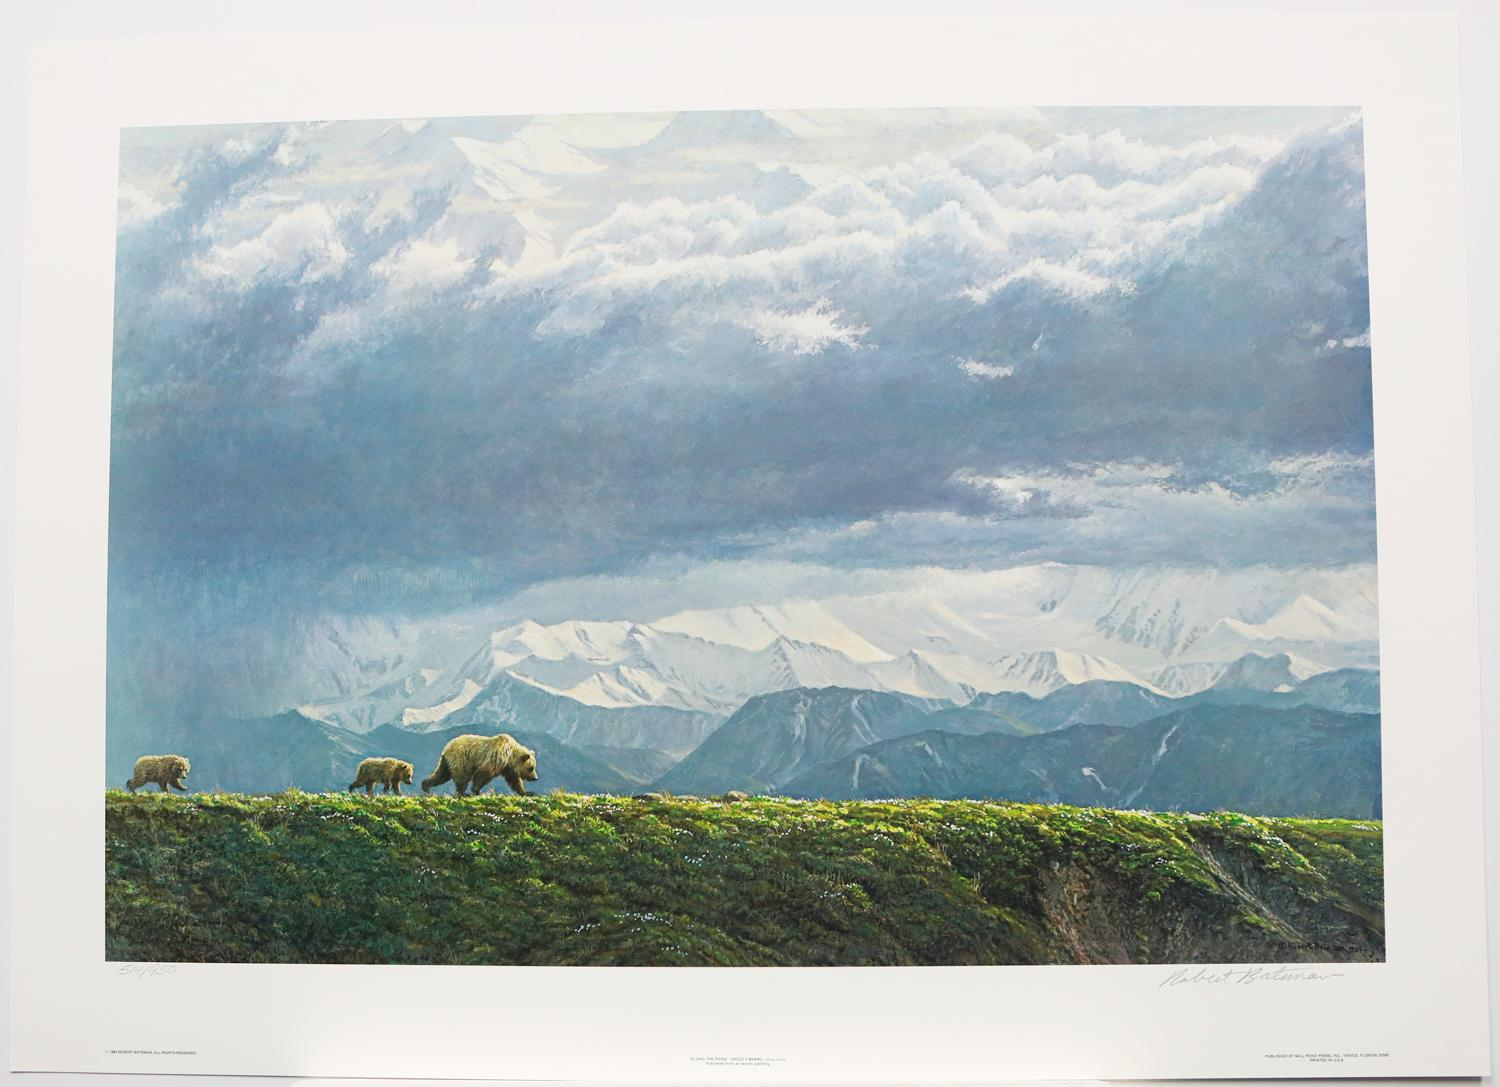 """Robert Bateman's """"Along The Ridge - Grizzly Bear"""" Limited Edition Print Signed and Numbered"""